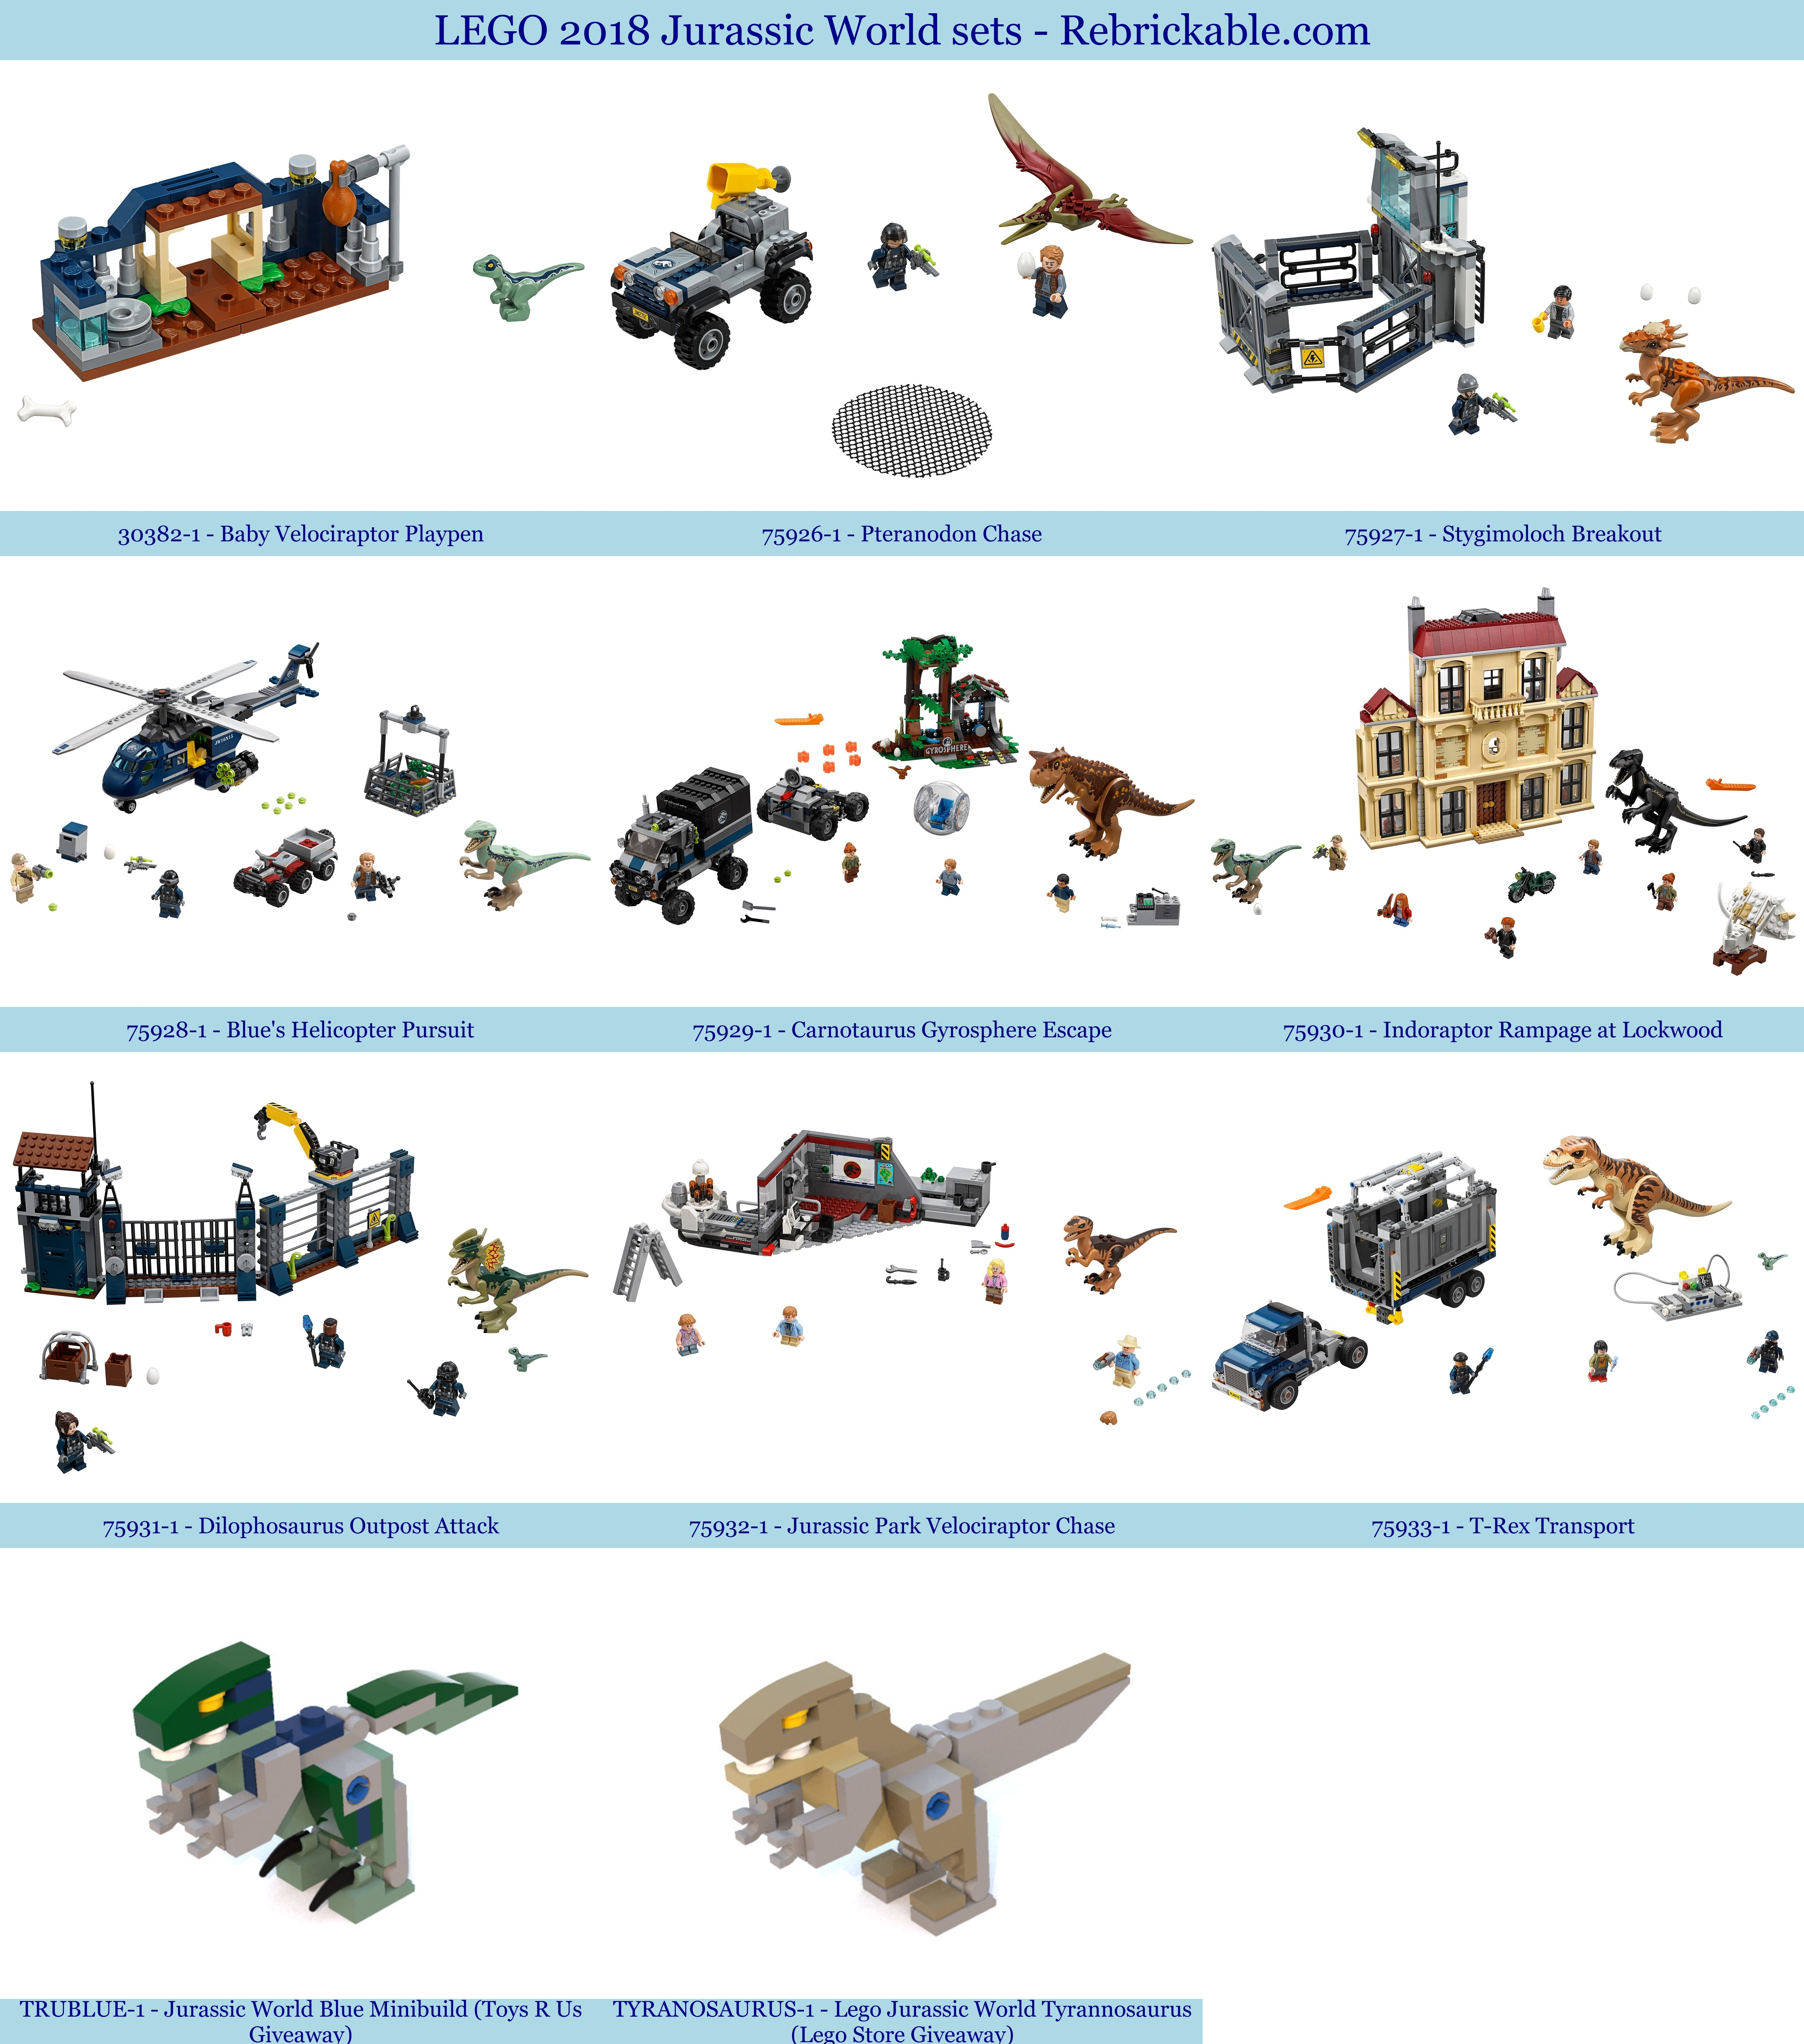 Lego Unveils The Complete Jurassic World Fallen Kingdom: Rebrickable - Build With LEGO